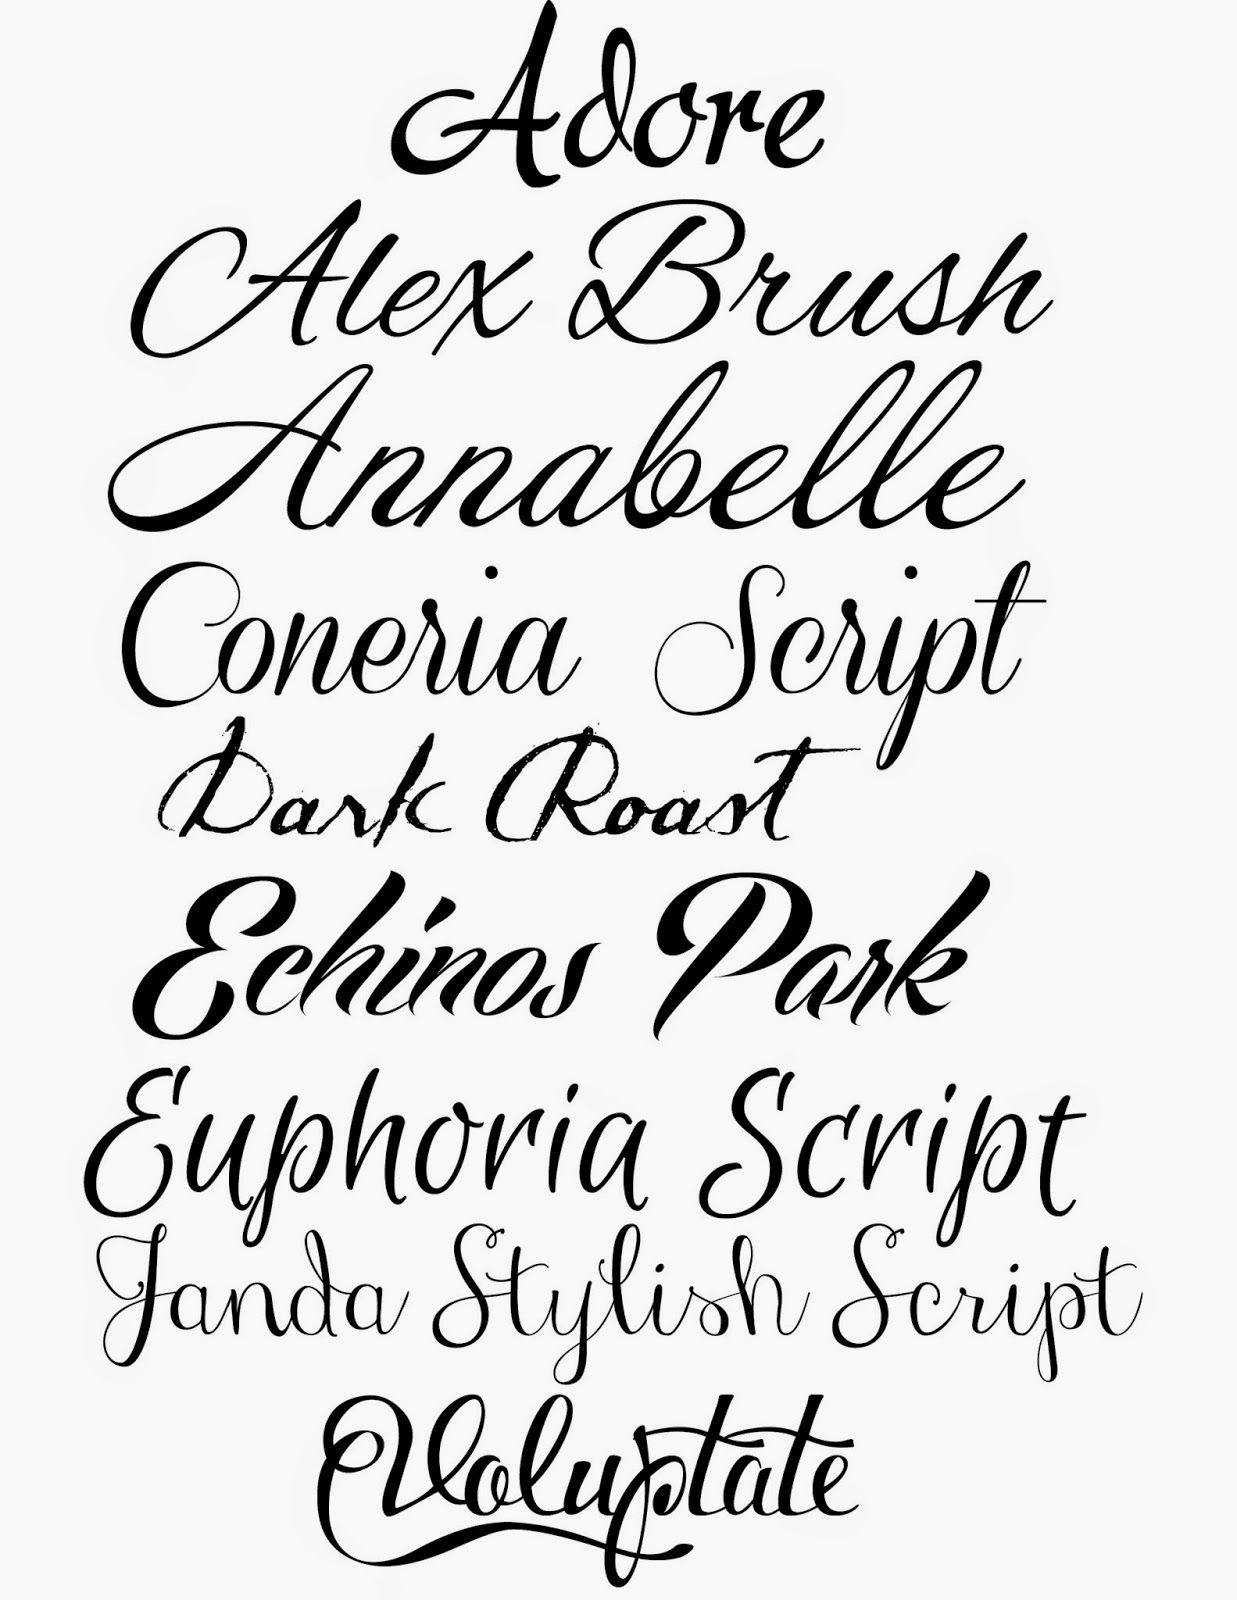 How To Fake Script Calligraphy And 9 Gorgeous Cursive FREE FONTS